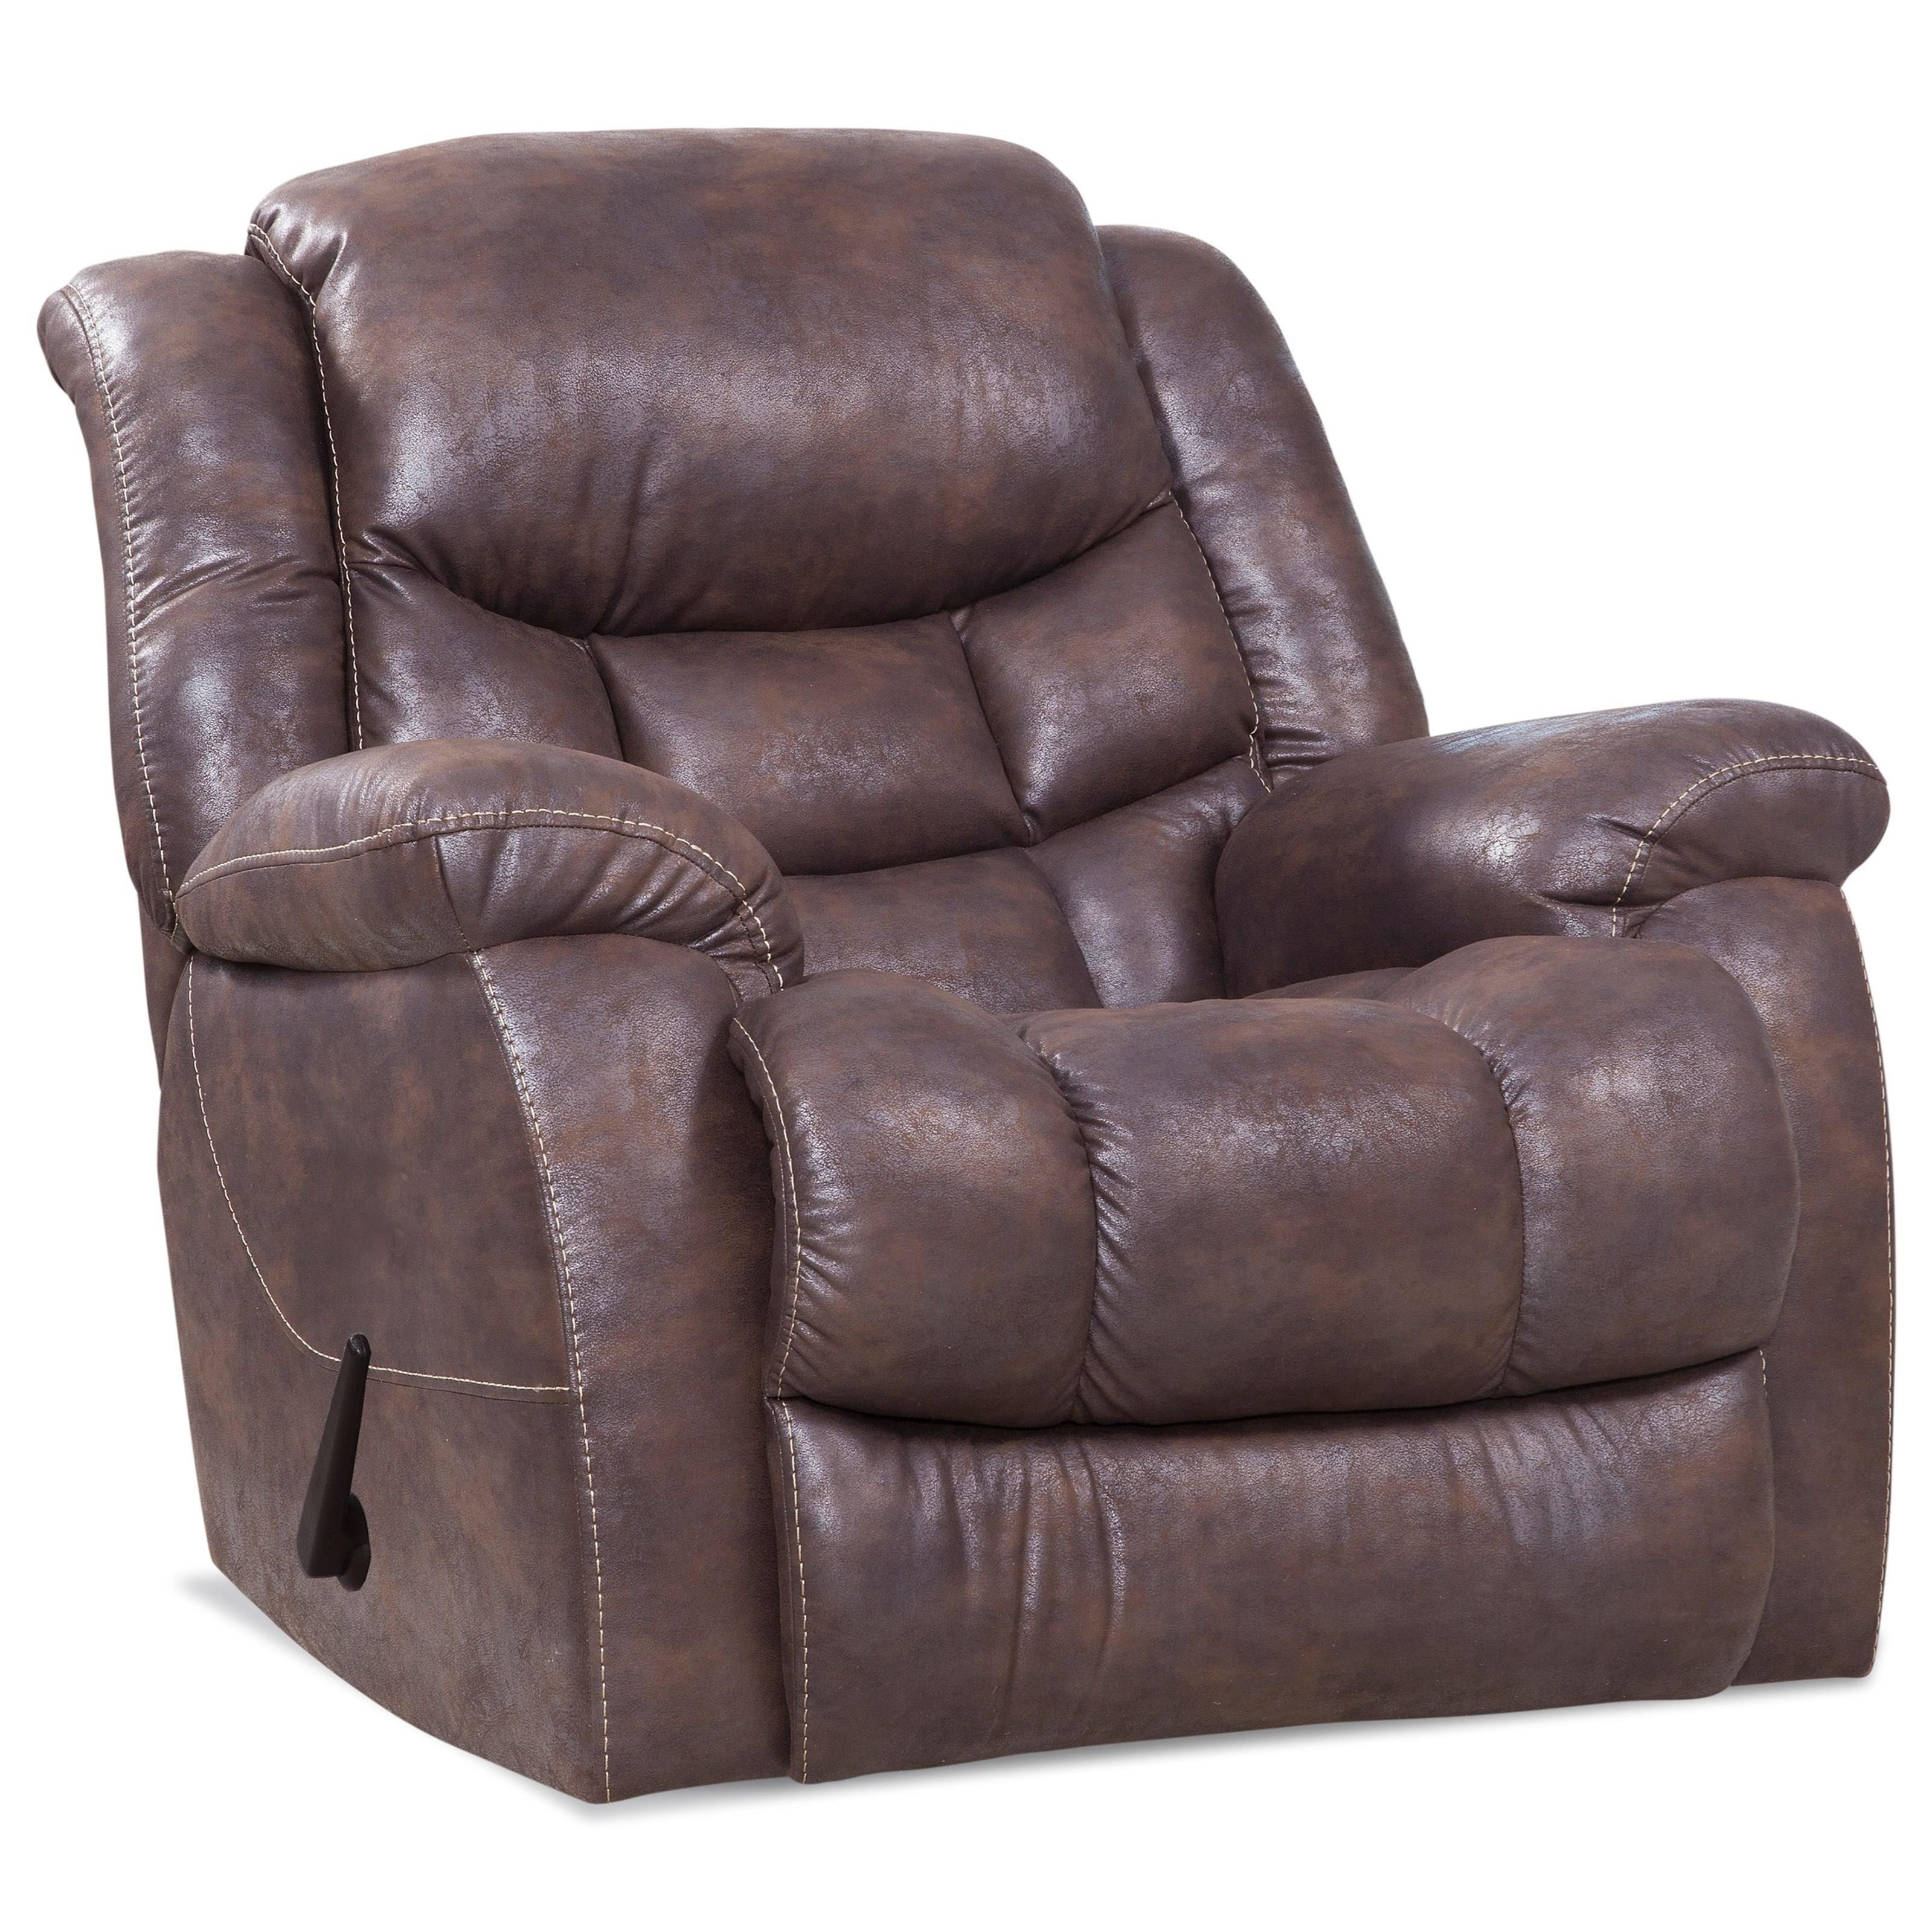 169 Plush Rocker Recliner by HomeStretch at Bullard Furniture